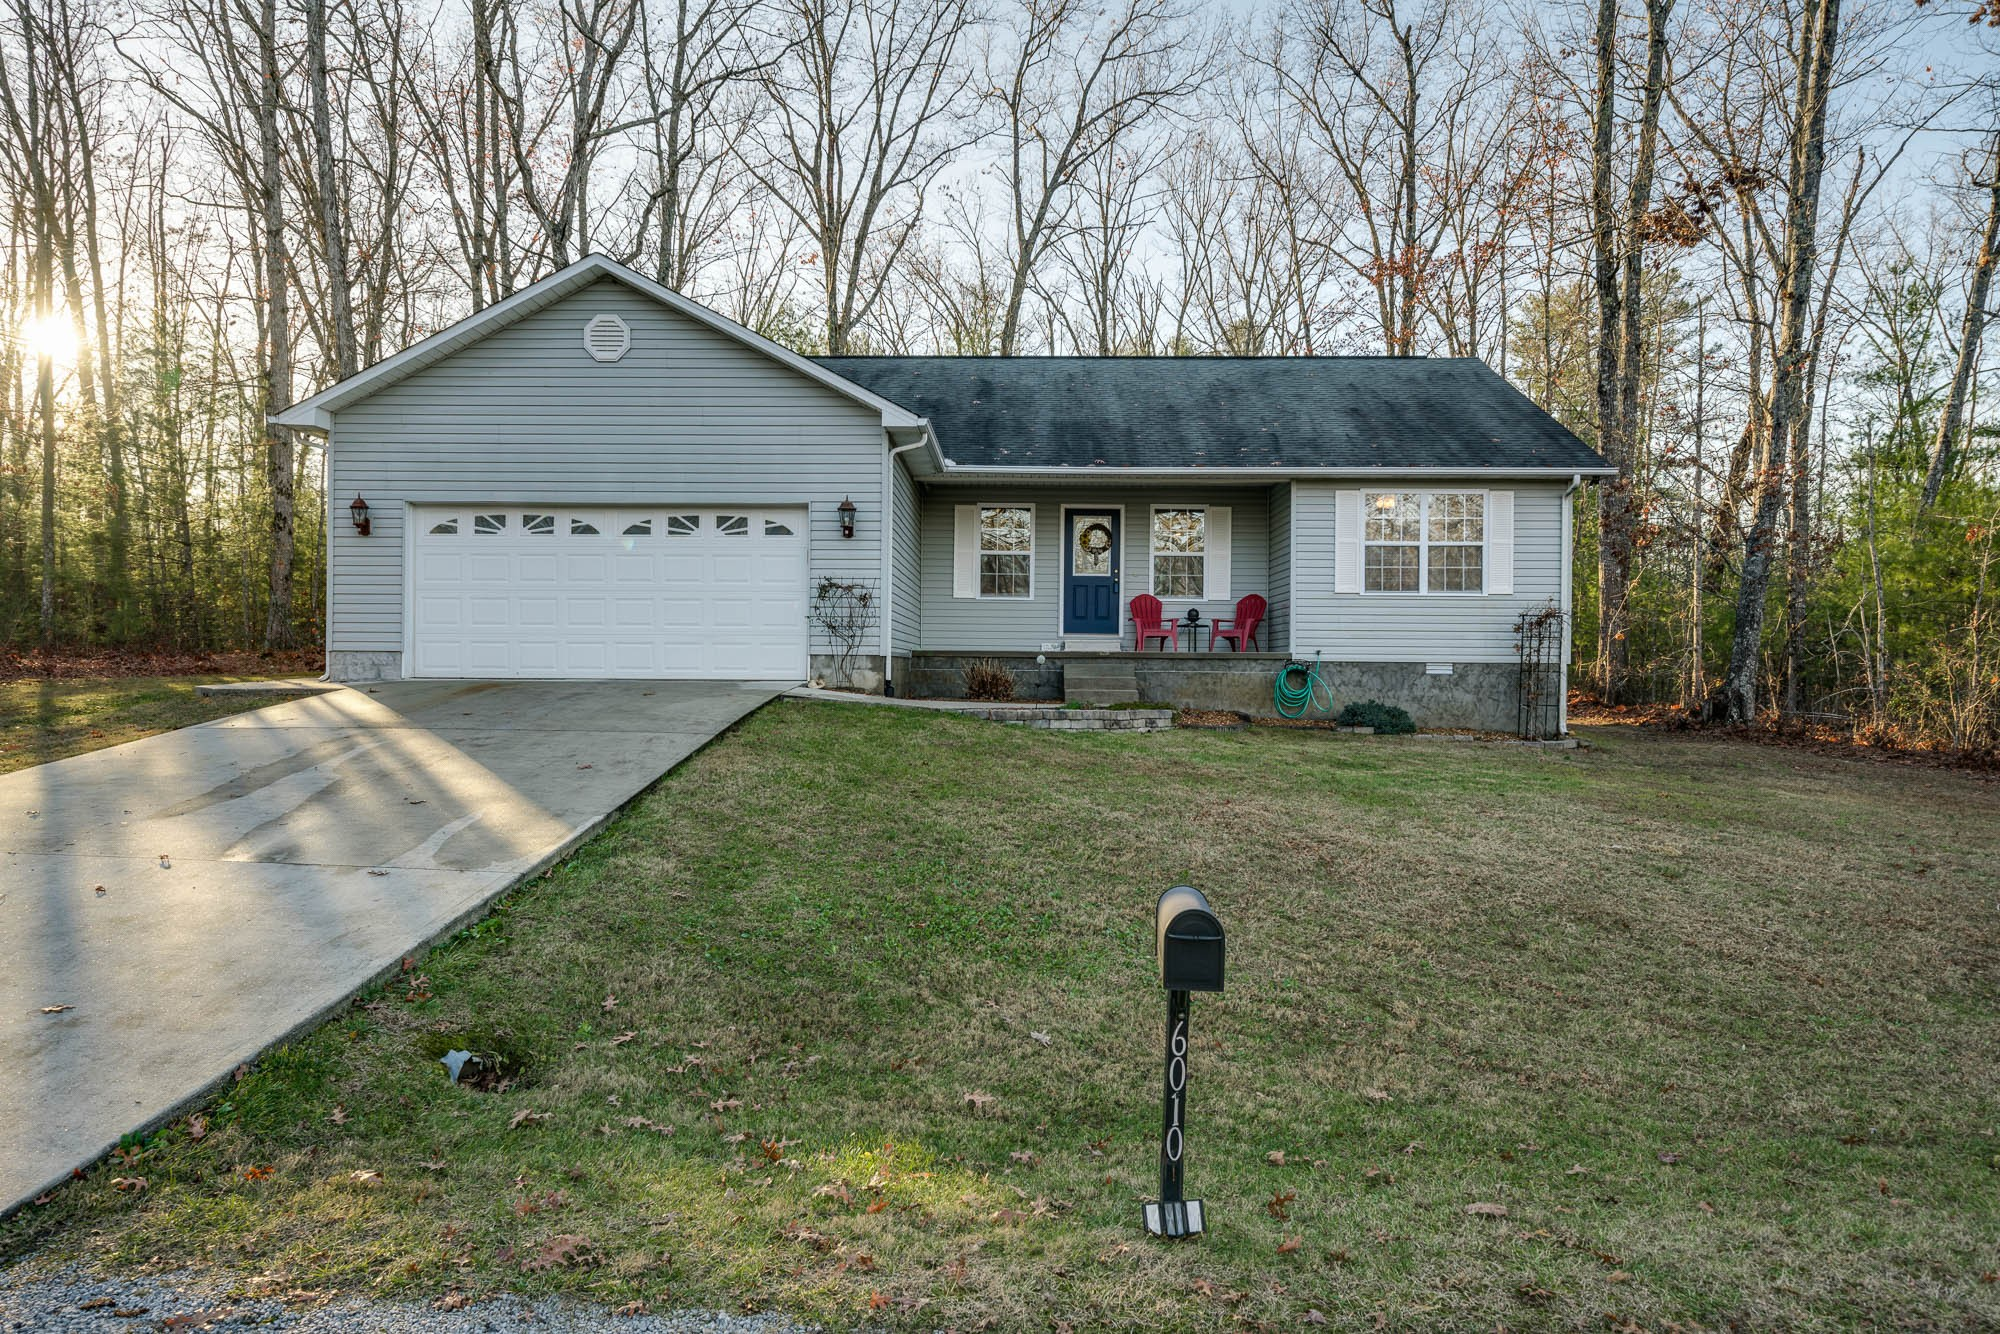 6010 Seneca Trl, Crossville, TN 38572 - Crossville, TN real estate listing